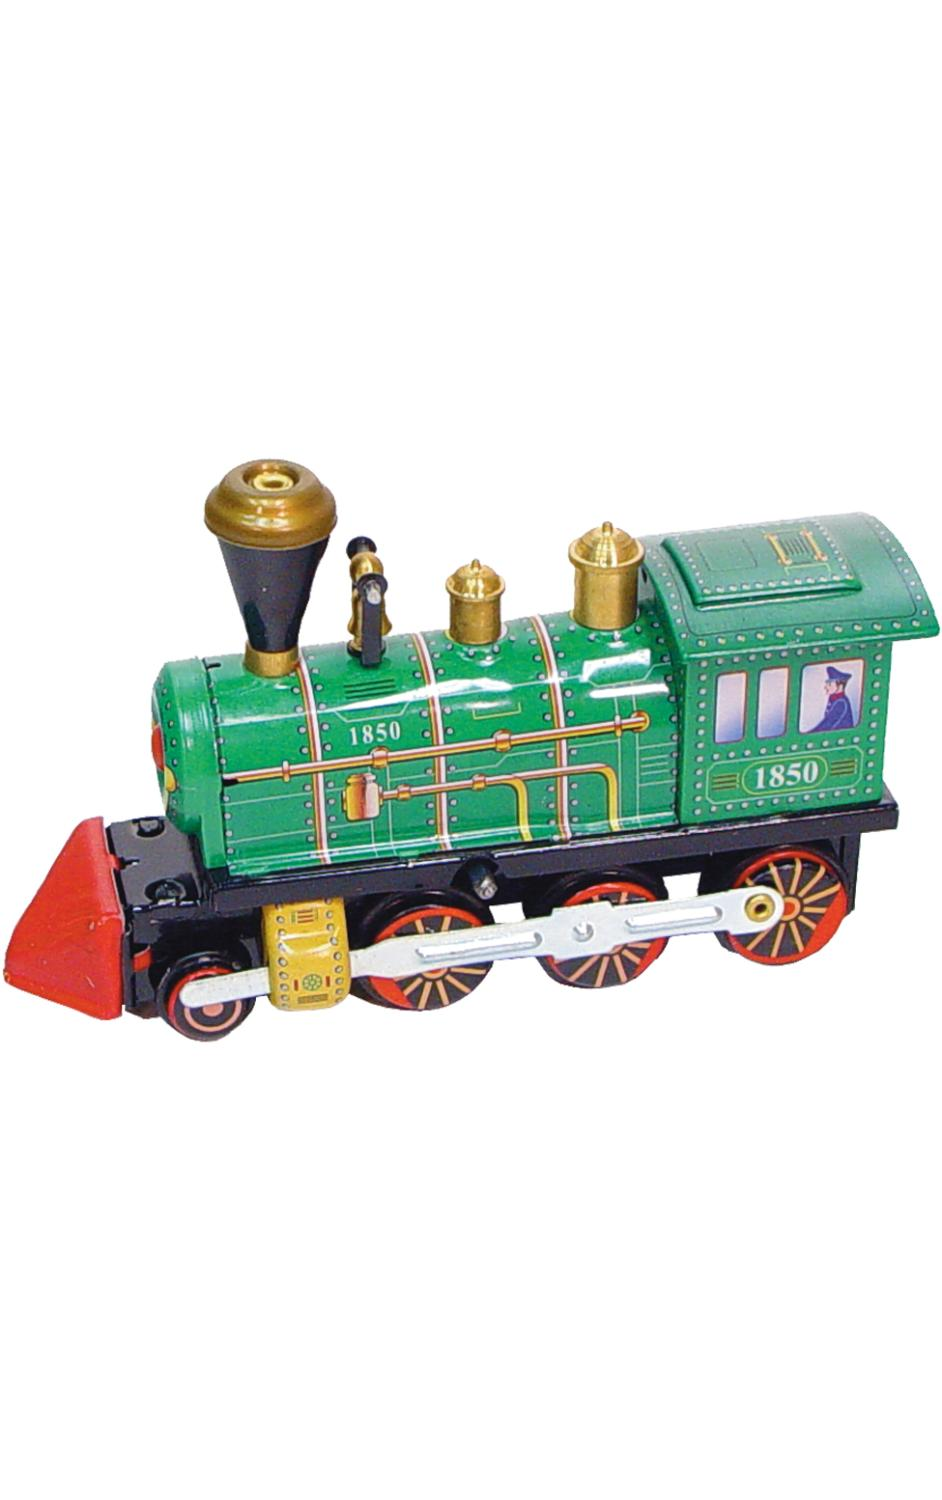 MS432 - Collectible Tin Toy - Locomotive - 3